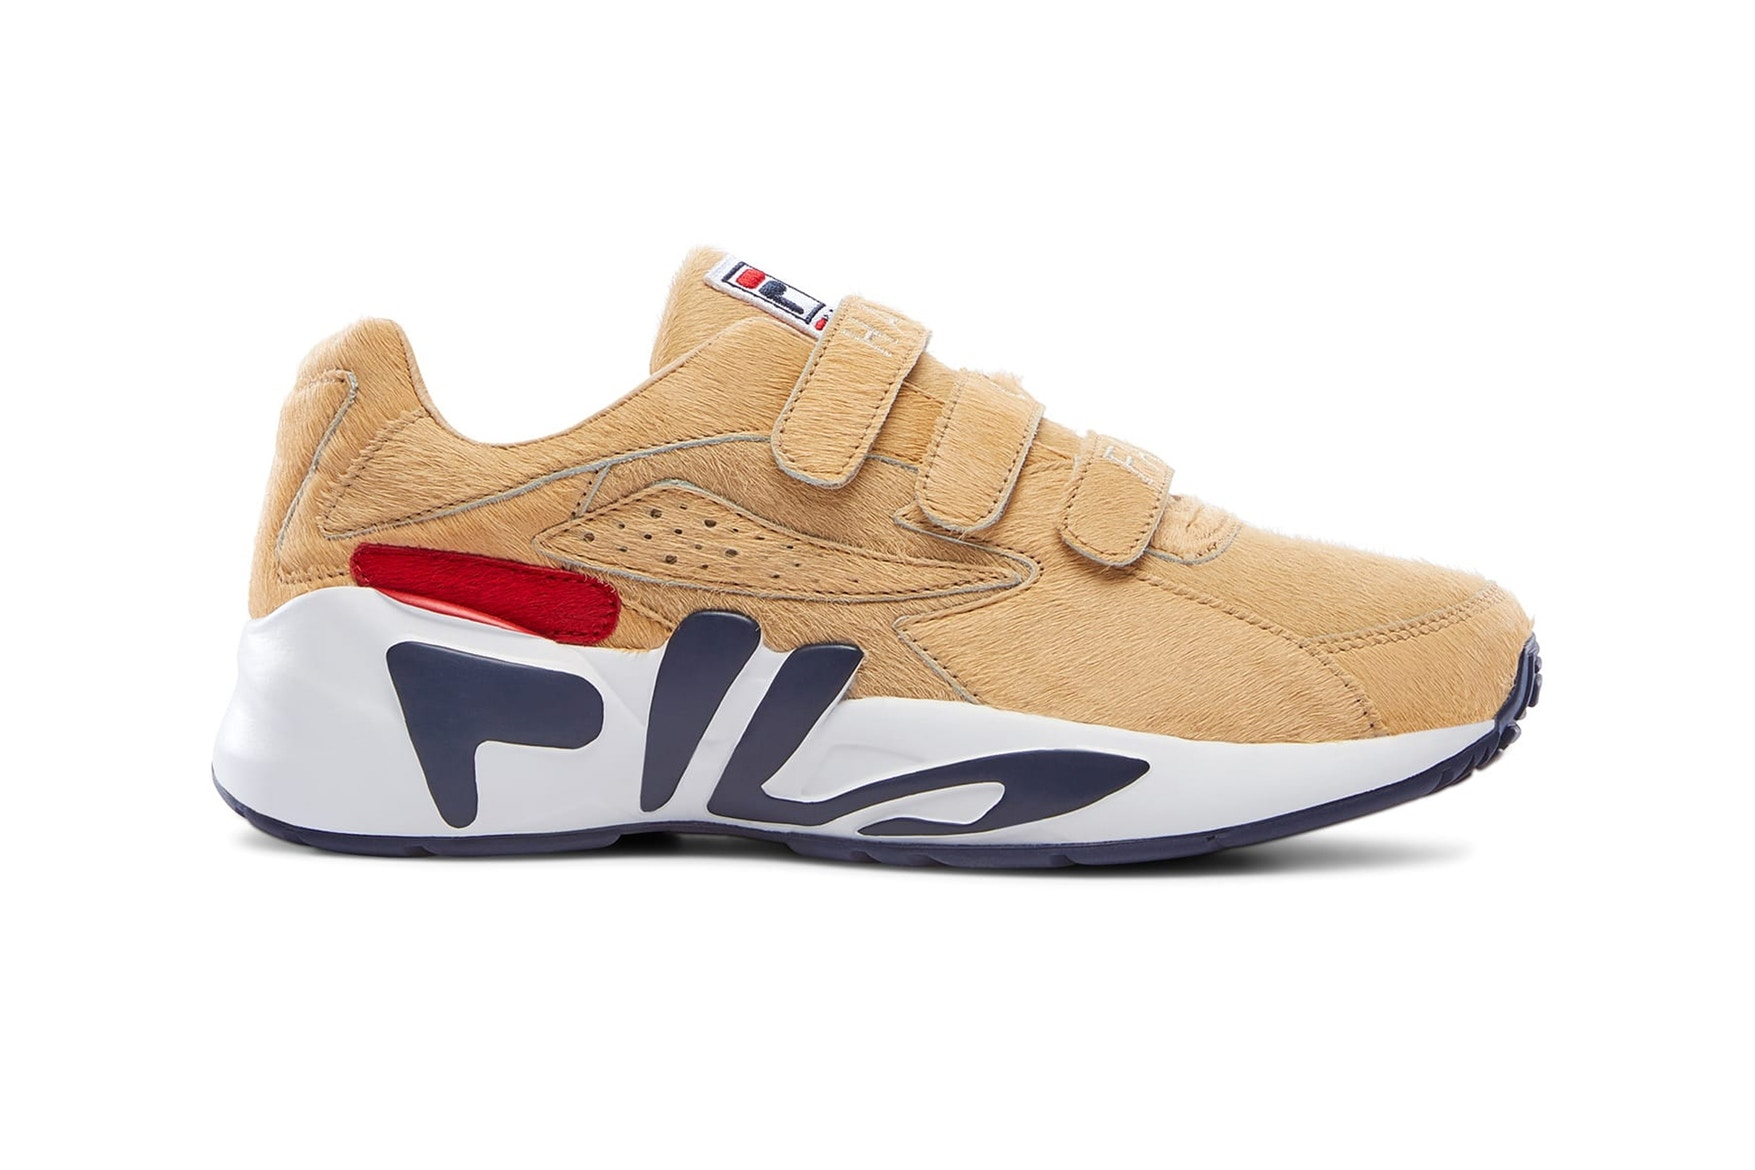 fila-revives-the-classic-mindblower-with-over-40-limited-edition-collaborations-18